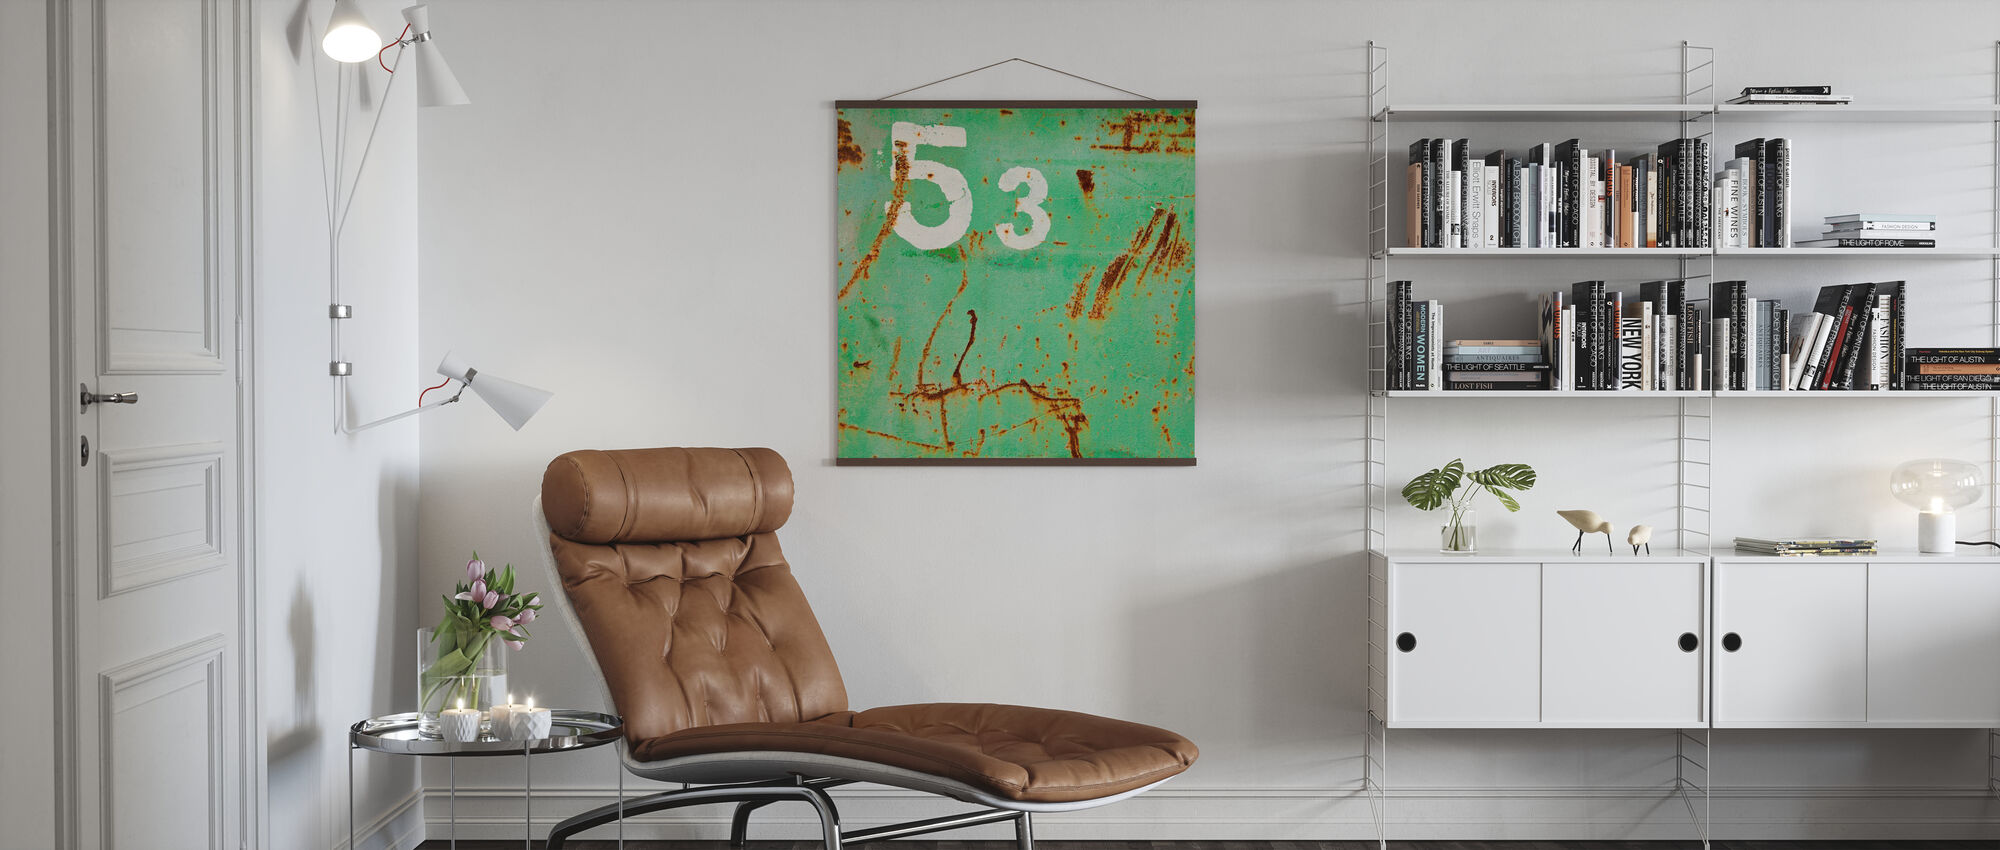 Grunge Fifty-three - Poster - Living Room